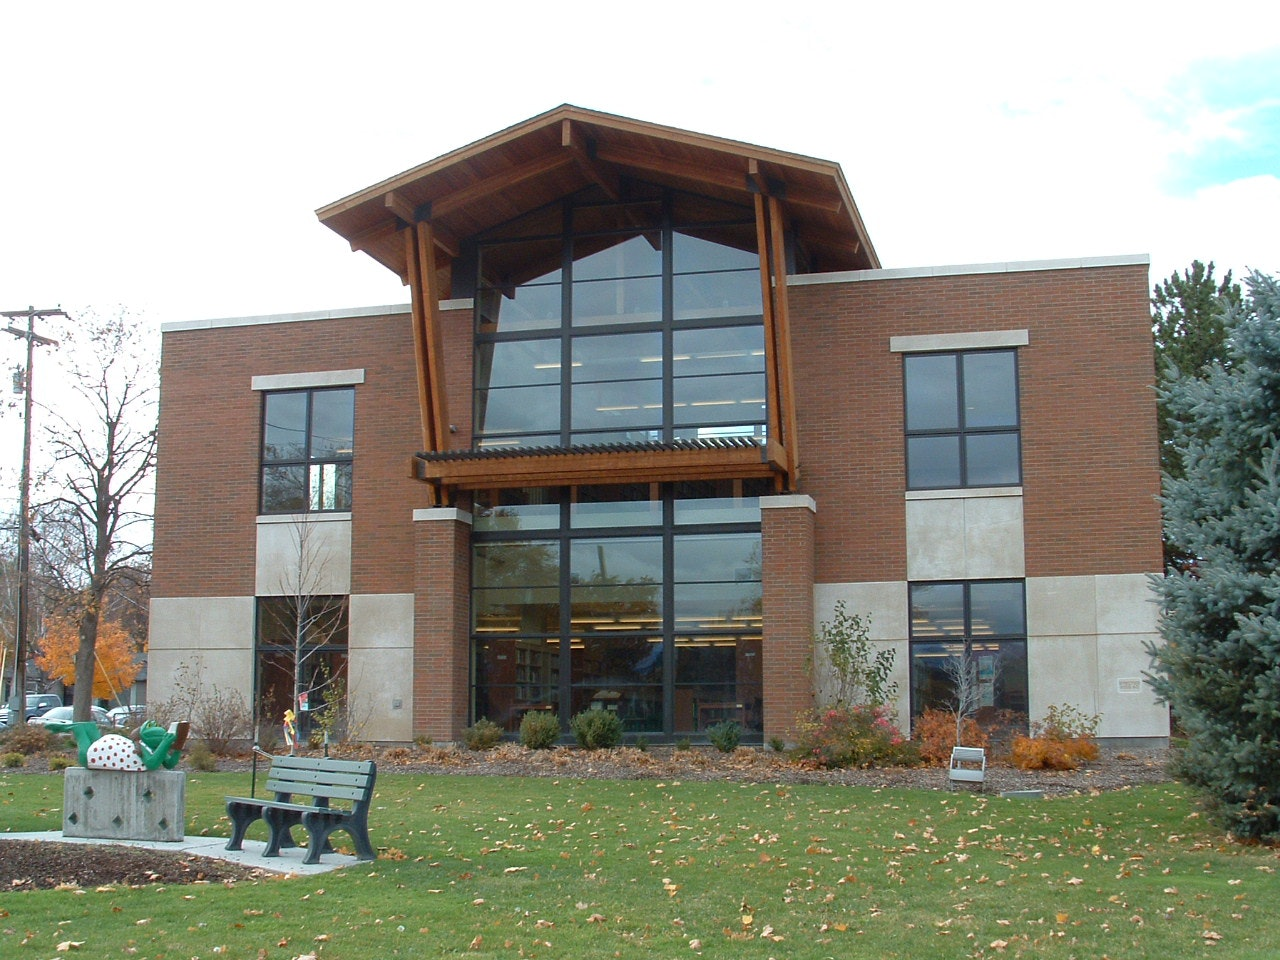 Milton-Freewater Public Library building